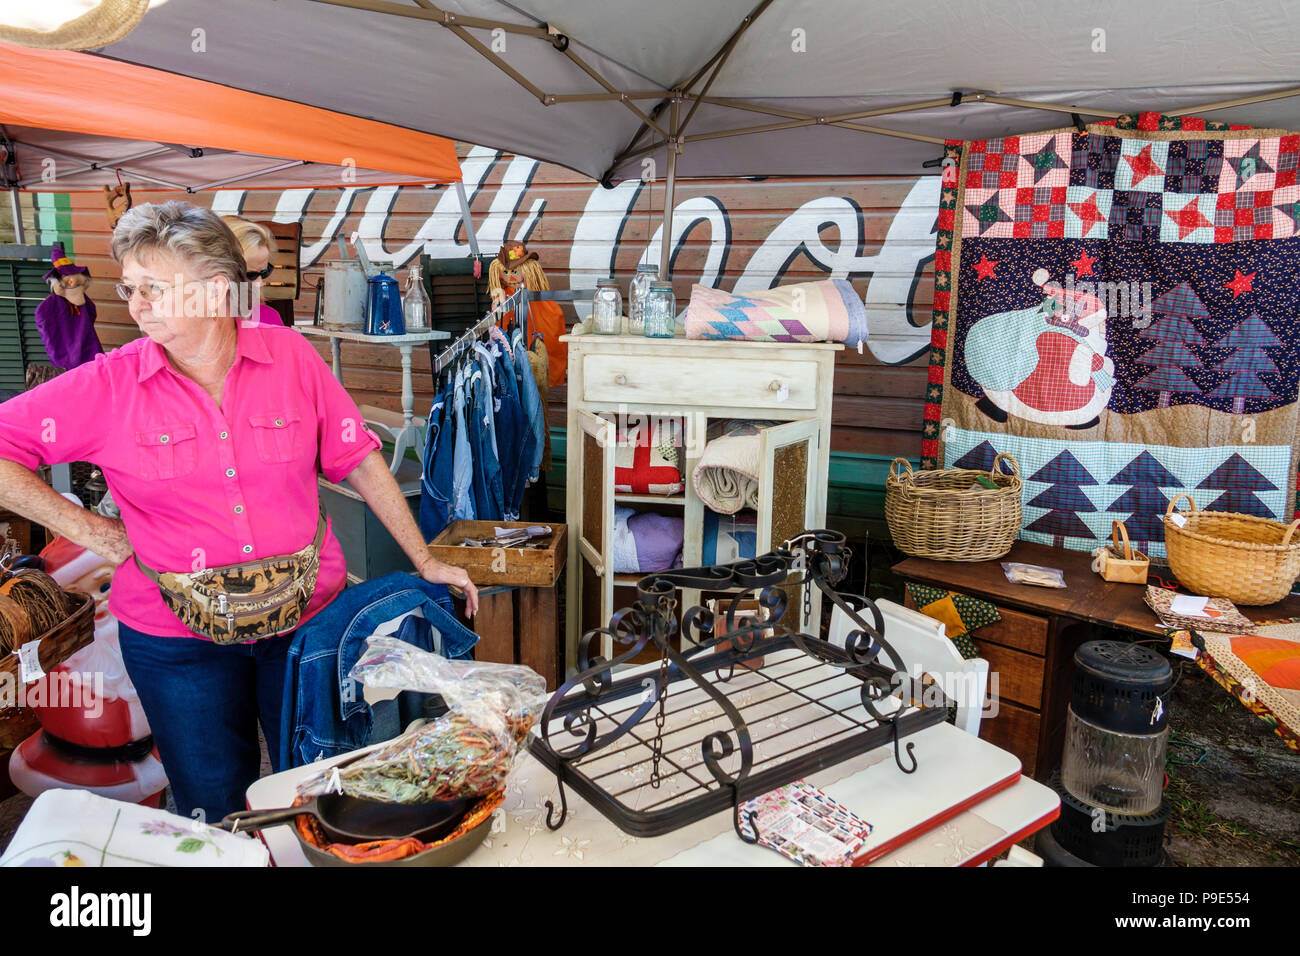 Florida Micanopy Fall Harvest Festival annual small town community event booths stalls vendors buying selling vintage antiques store home decor woman - Stock Image